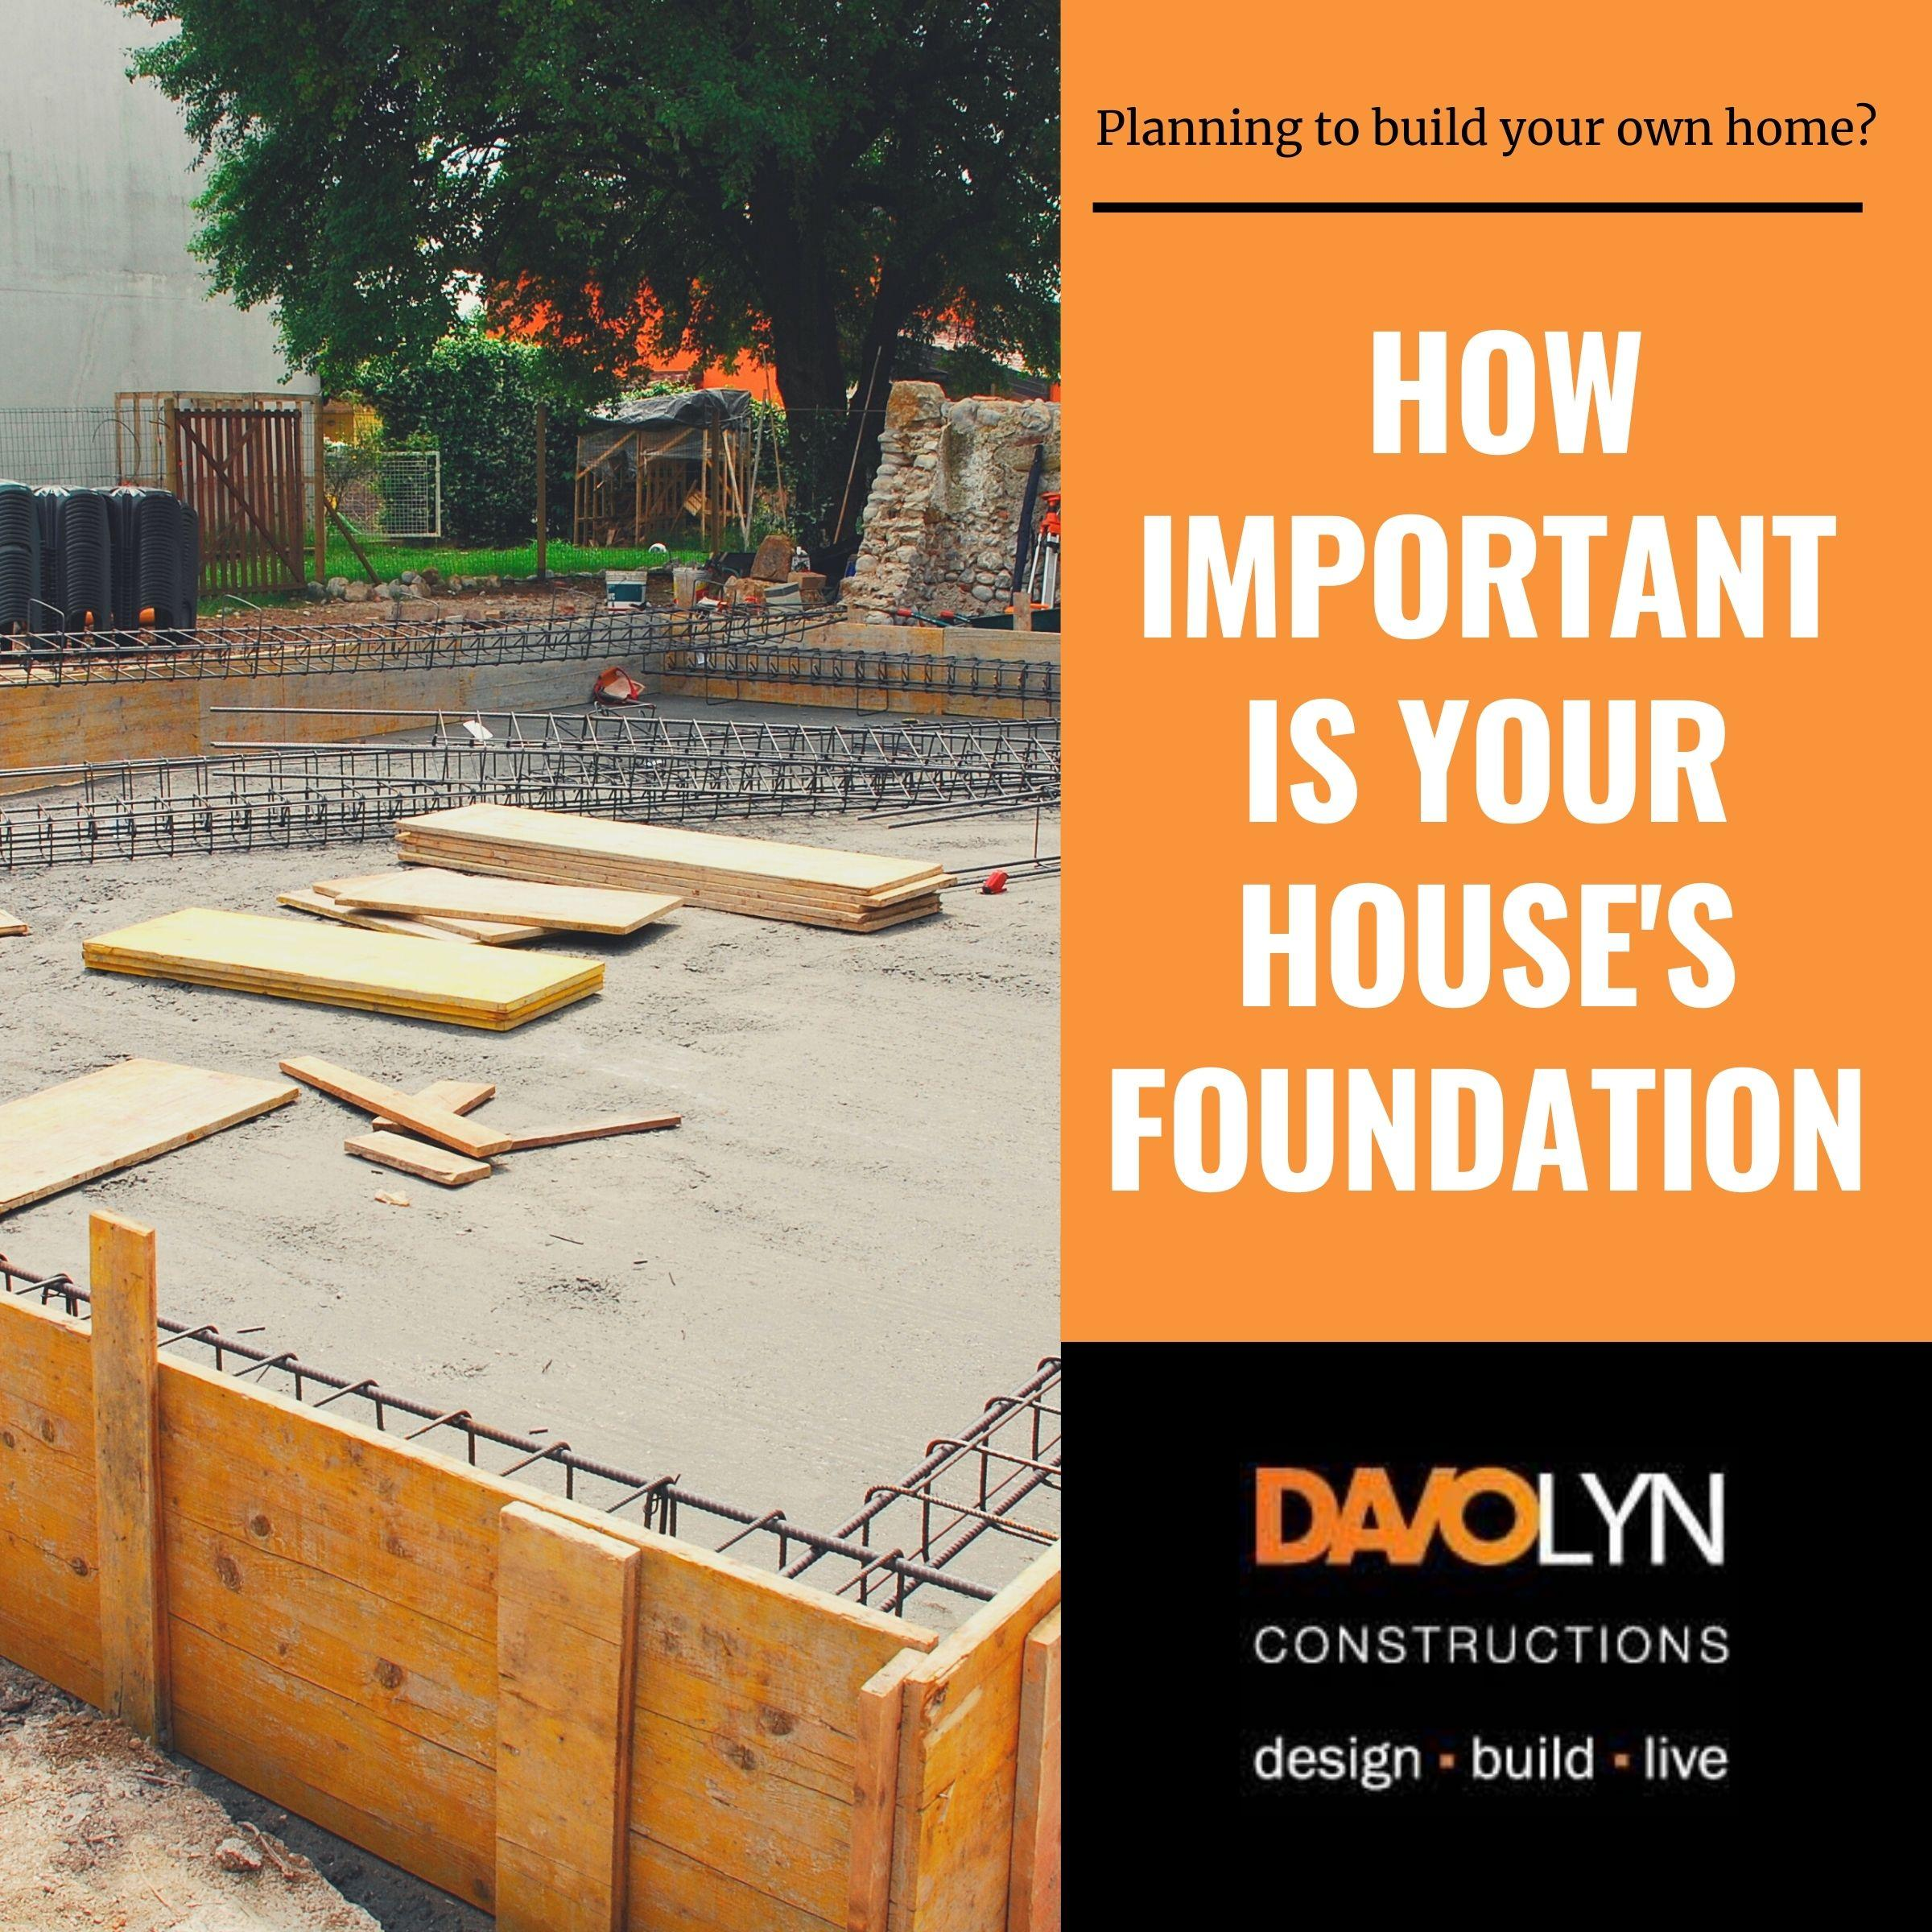 It's All About The Foundation: What Makes a Quality Home